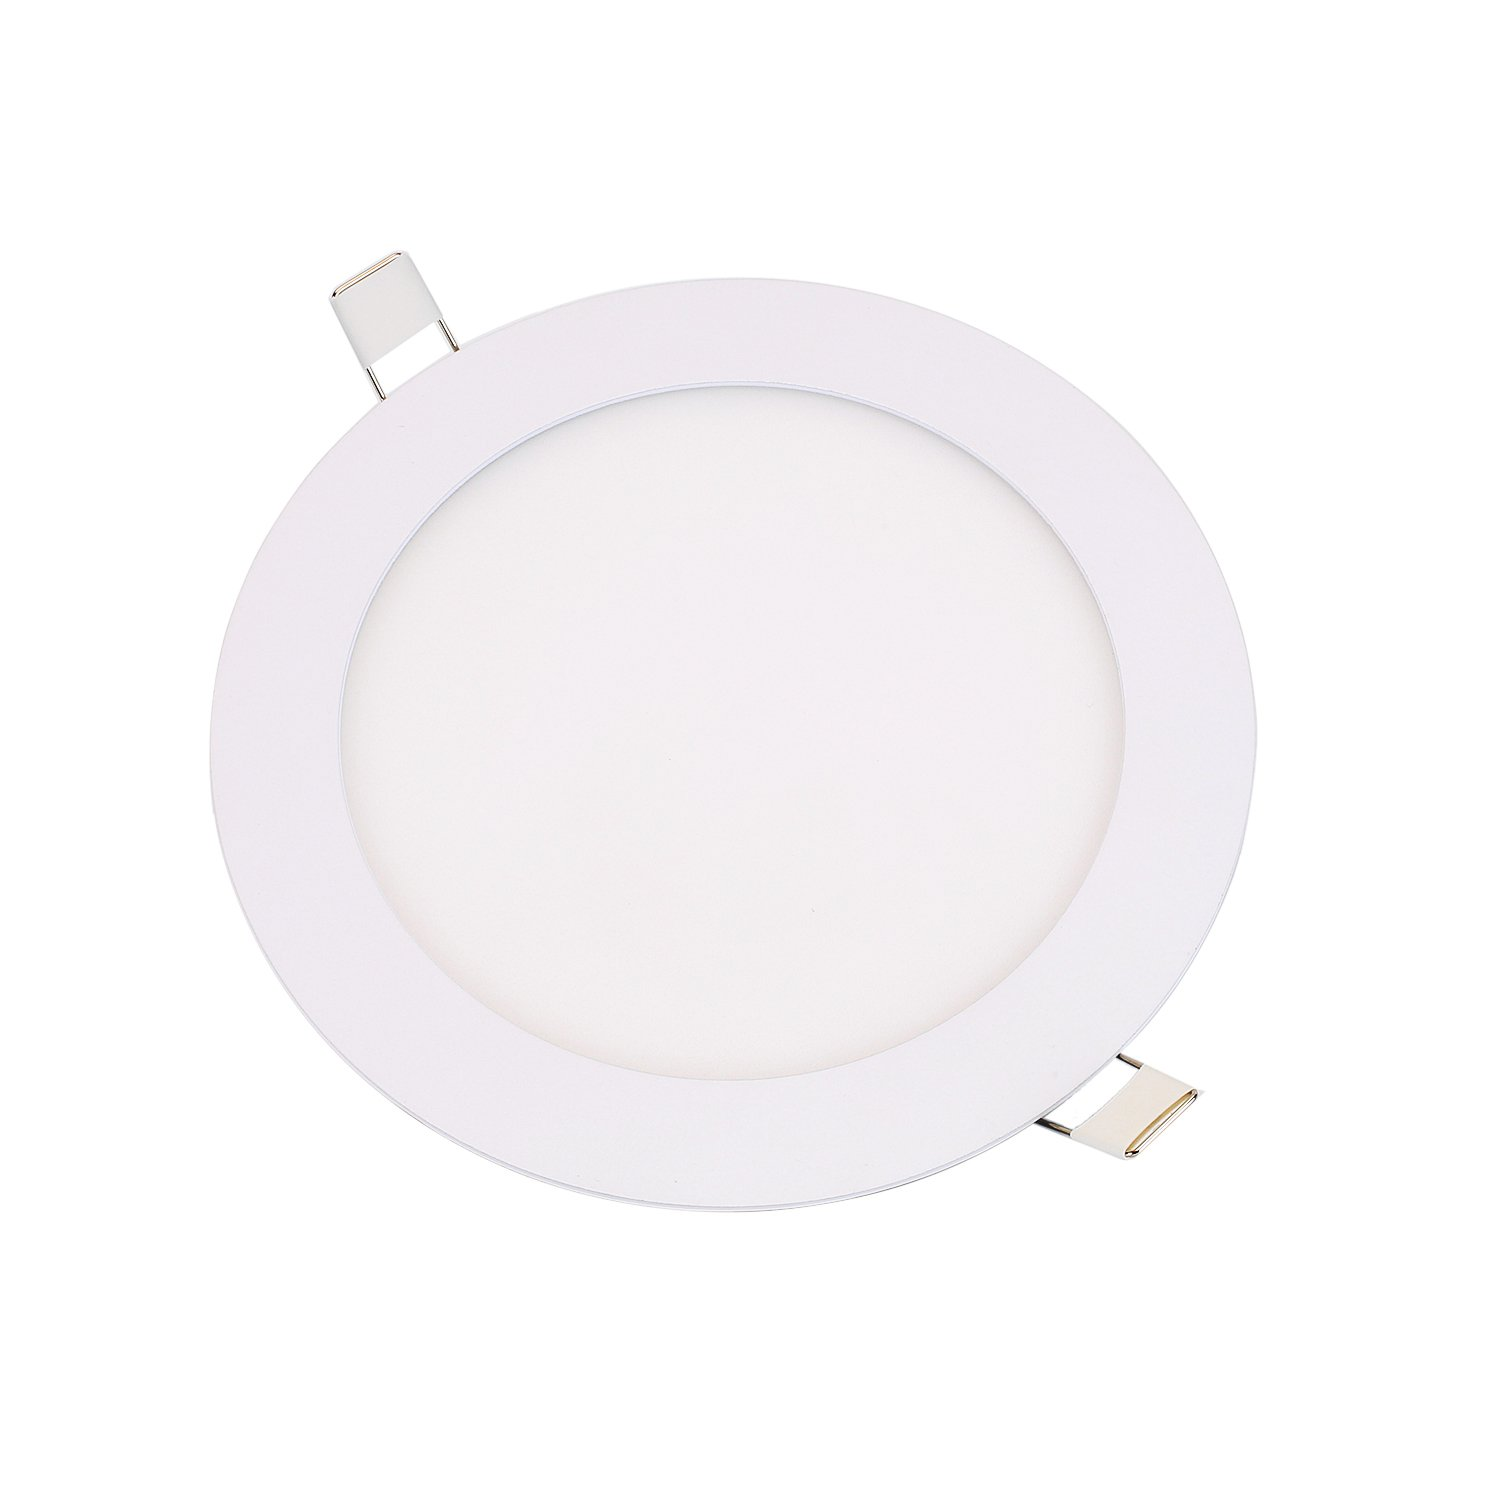 Zoostliss 12w 6'' Cool White Ultra Thin Led Panel Downlight Round Ceiling Recessed Spot Light Panel lamp (10PCS) by Zoostliss (Image #3)